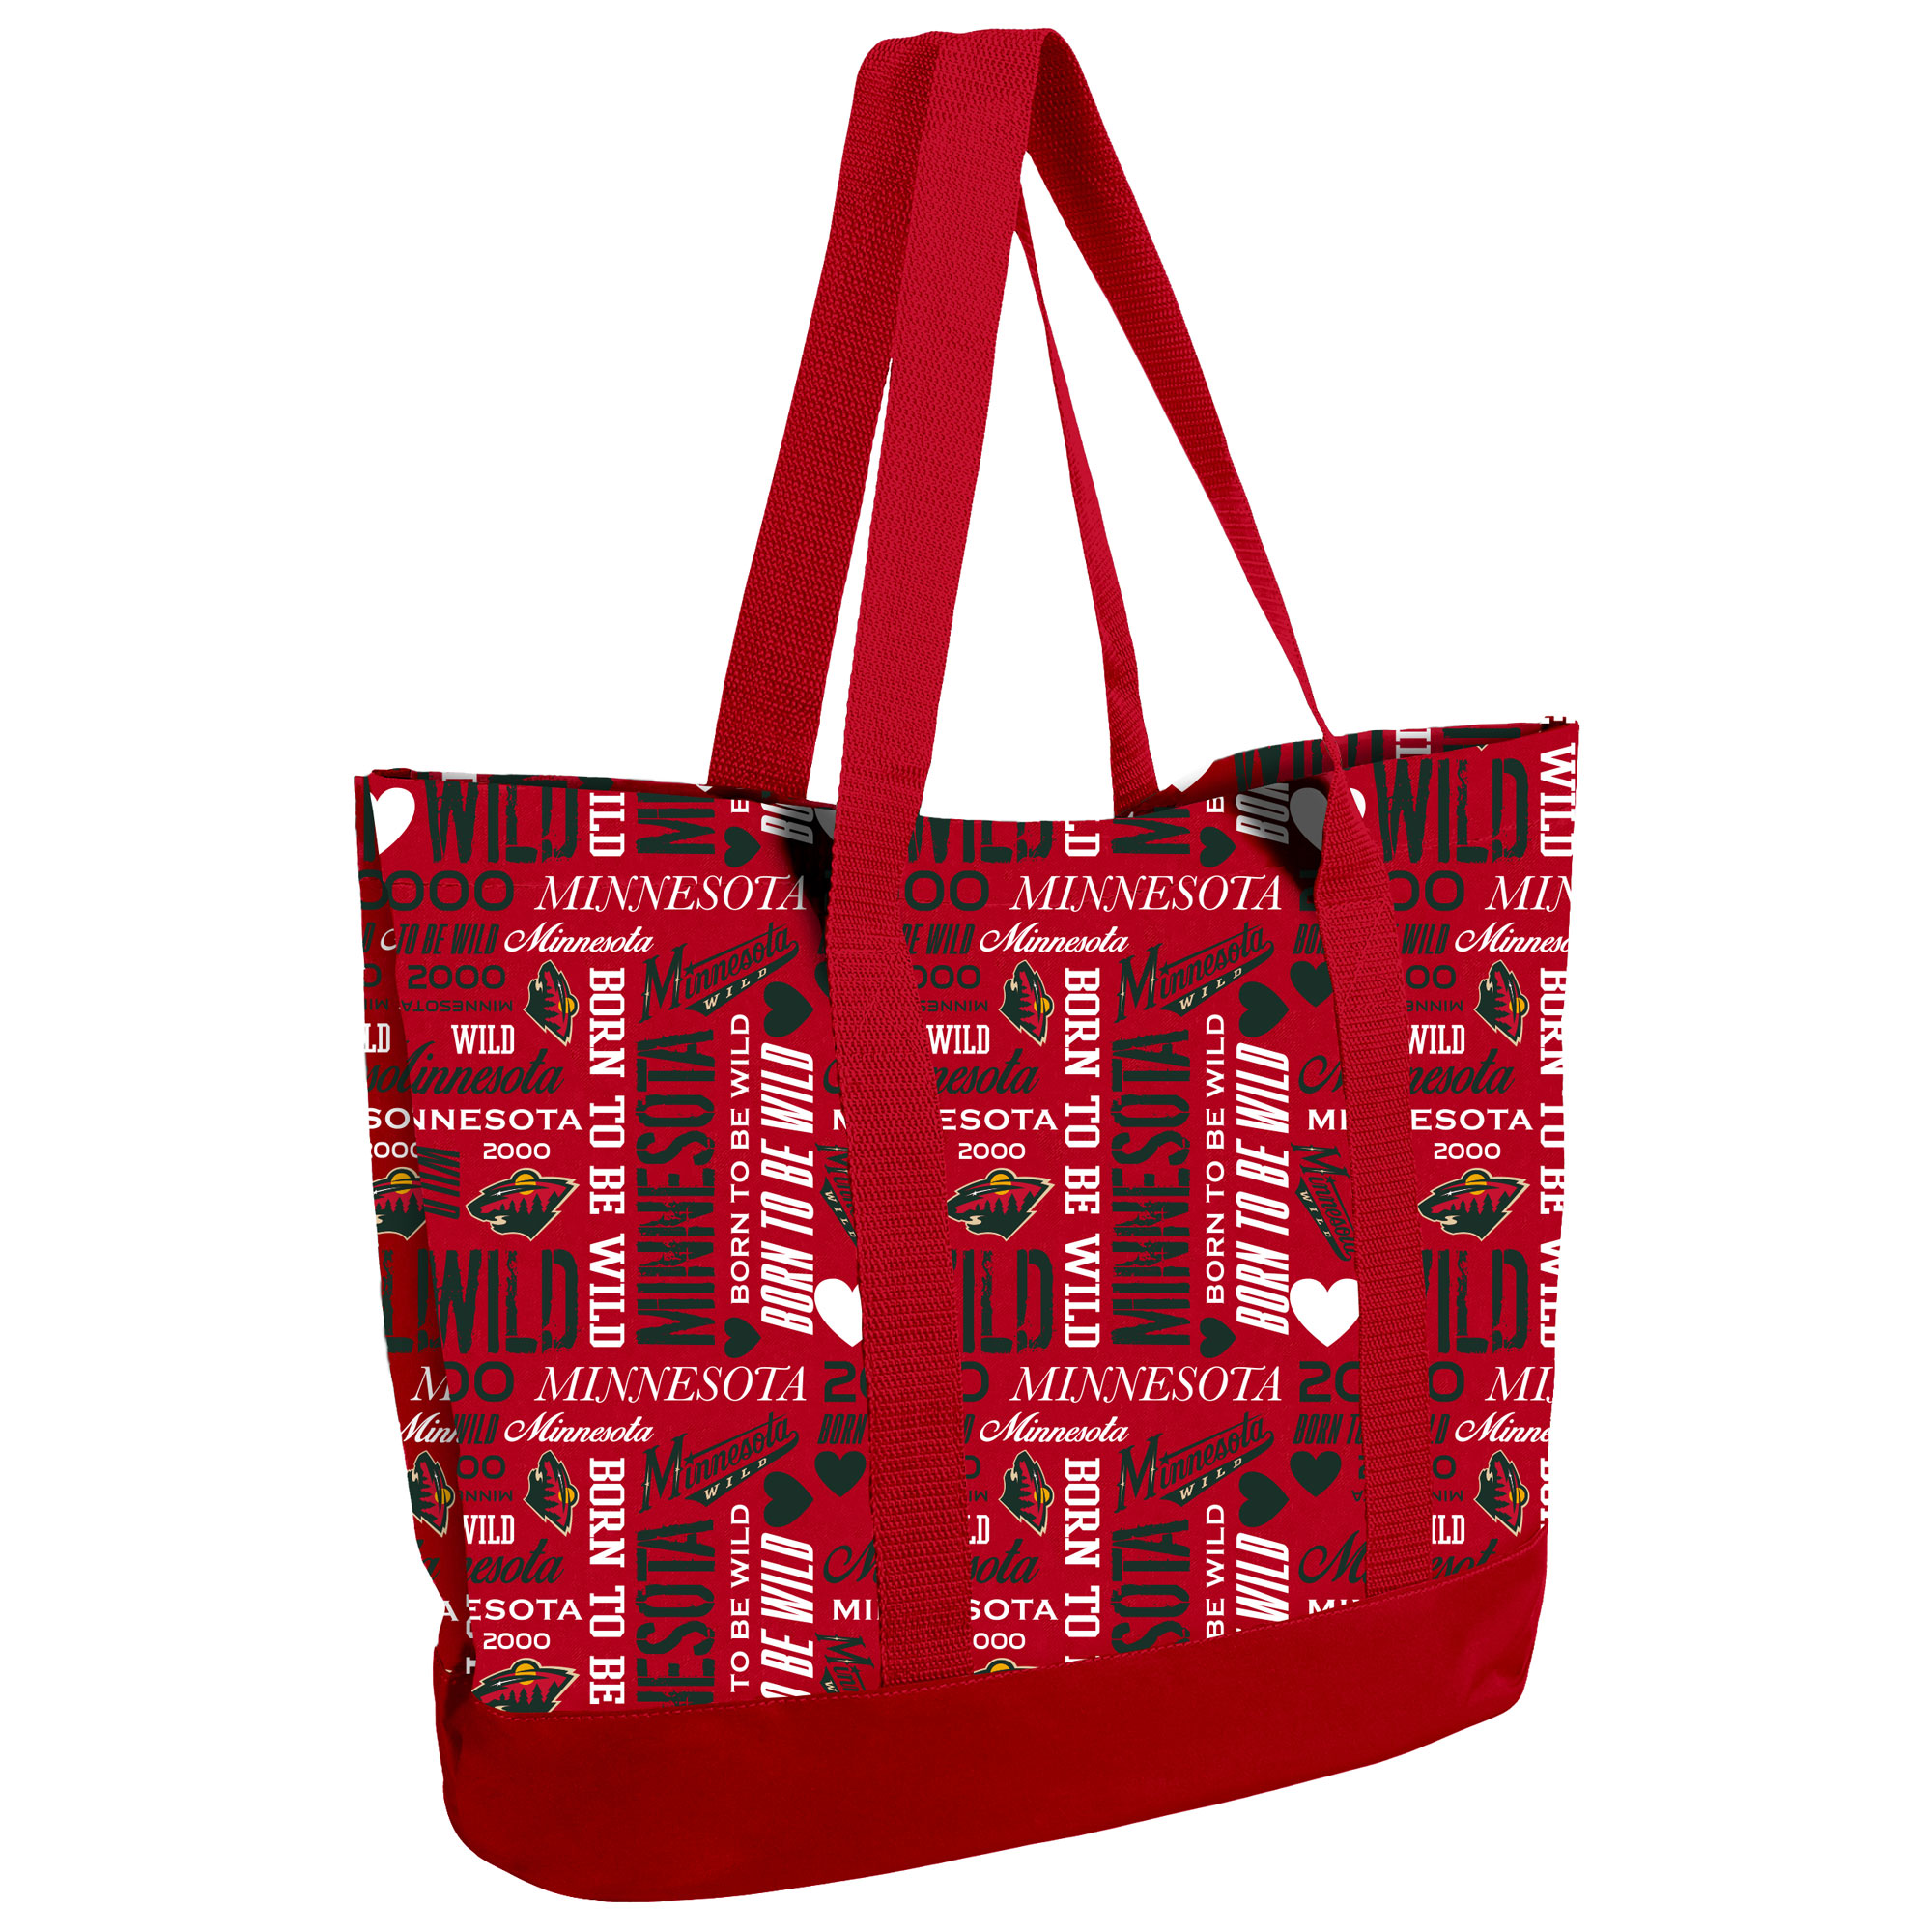 Minnesota Wild Women's Collage Tote Bag - No Size